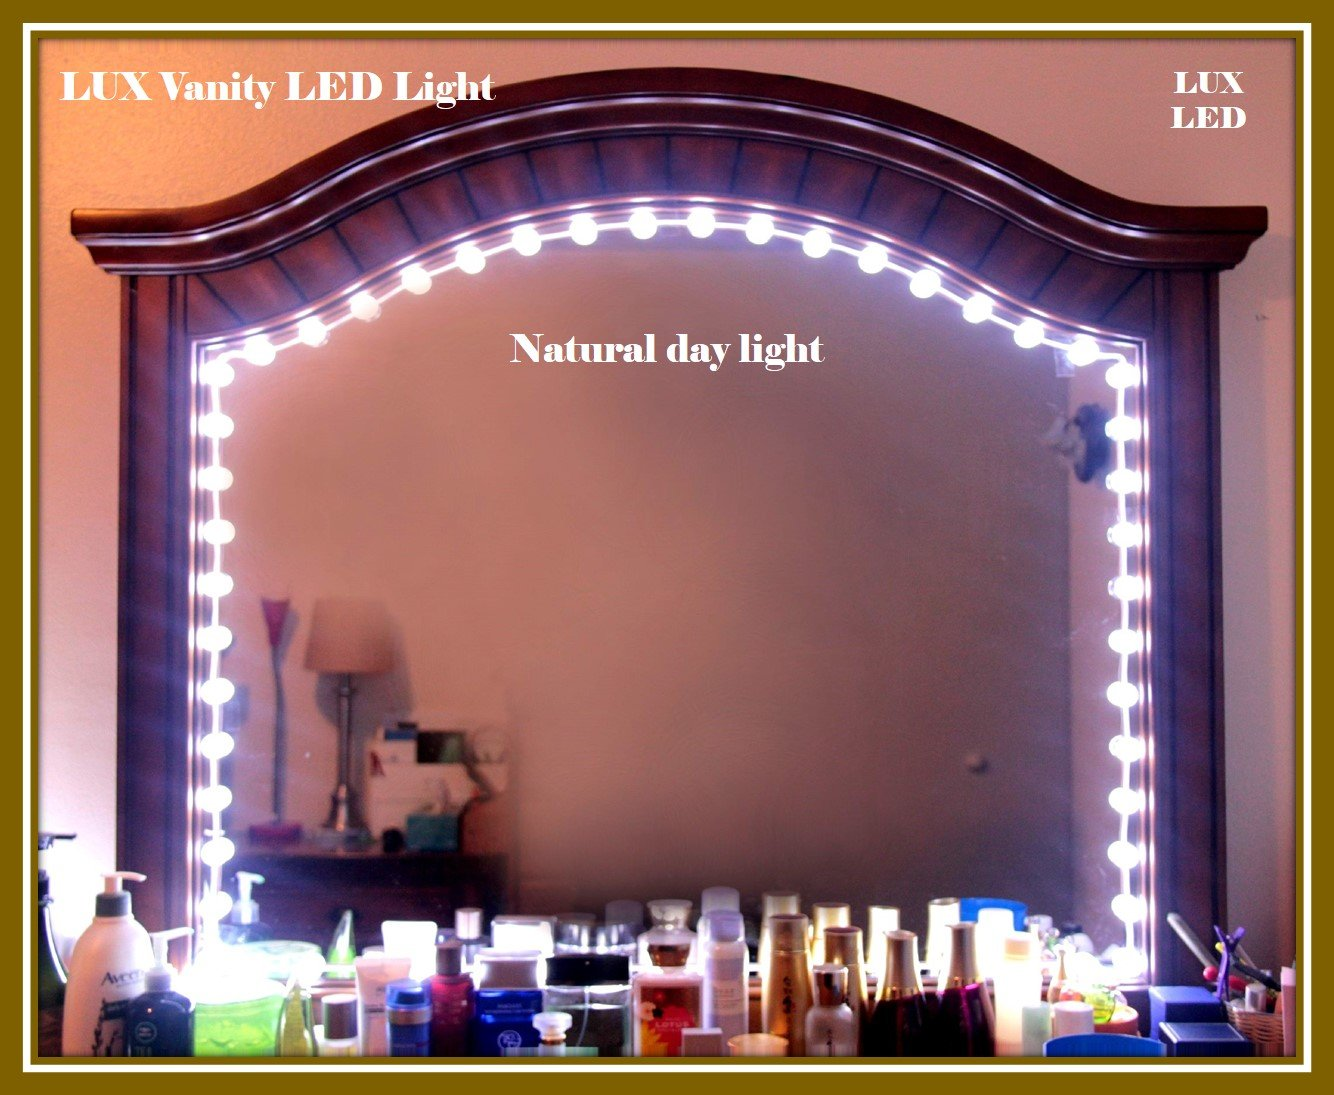 (White 6ft) - Hollywood Style Vanity Mirror Lights Makeup Mirror Lights Anti-Glare Luxurious LED Lights for Vanity Mirror w/Touch Dimmer Switch All in One Kit Set (33pcs Bulbs - White 1.8m) B06WD2BNBK  White 6ft